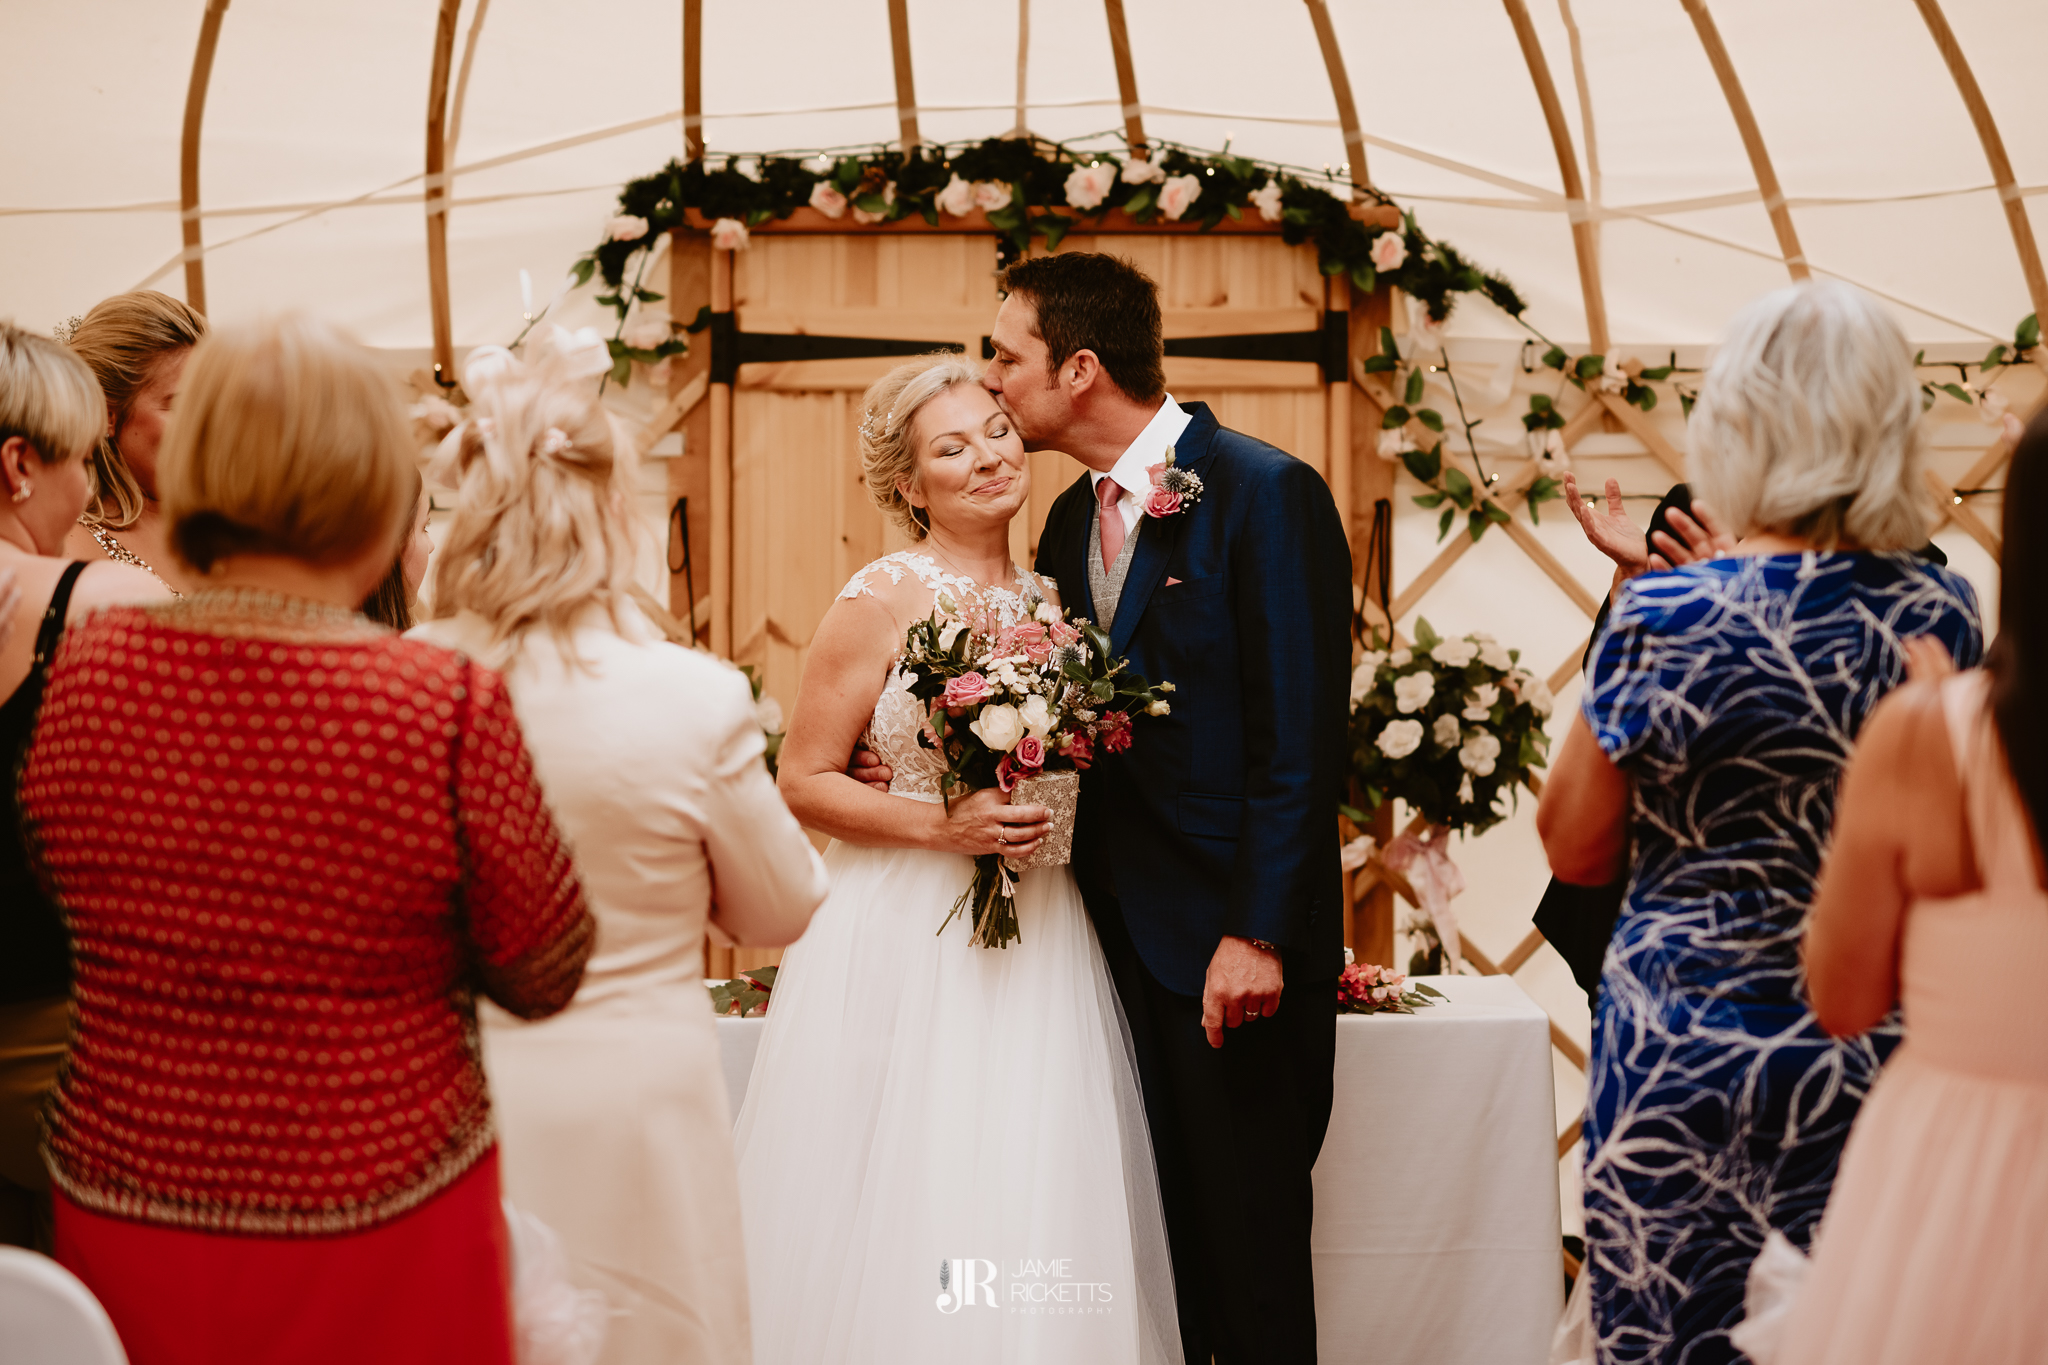 Wroxeter-Hotel-Wedding-Photography-In-Shropshire-By-Shropshire-Wedding-Photographer-Jamie-Ricketts-075.JPG